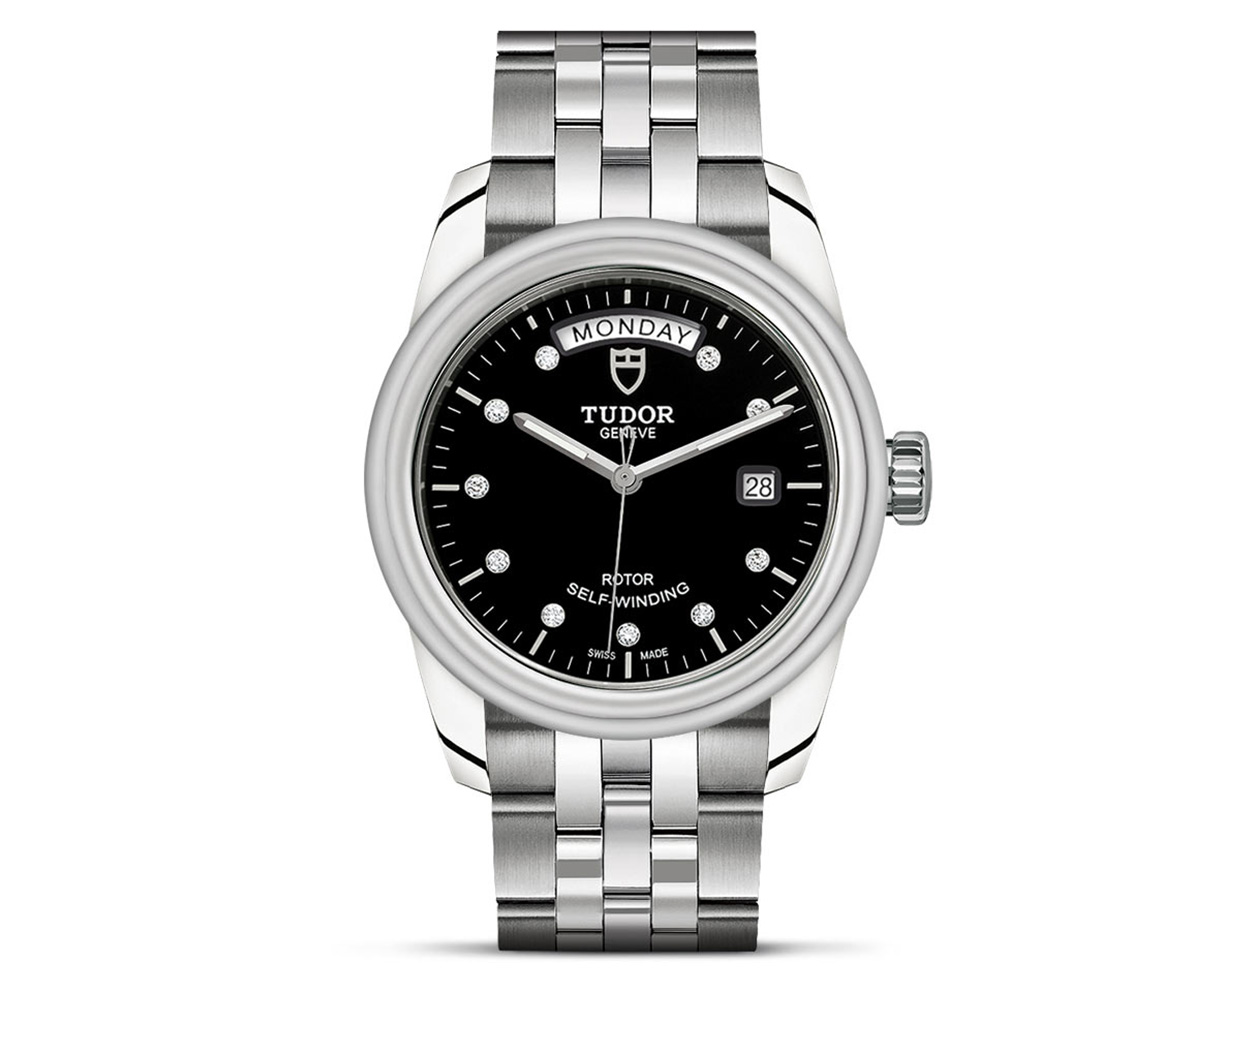 TUDOR Glamour Date Day M56000 0008 FINAL